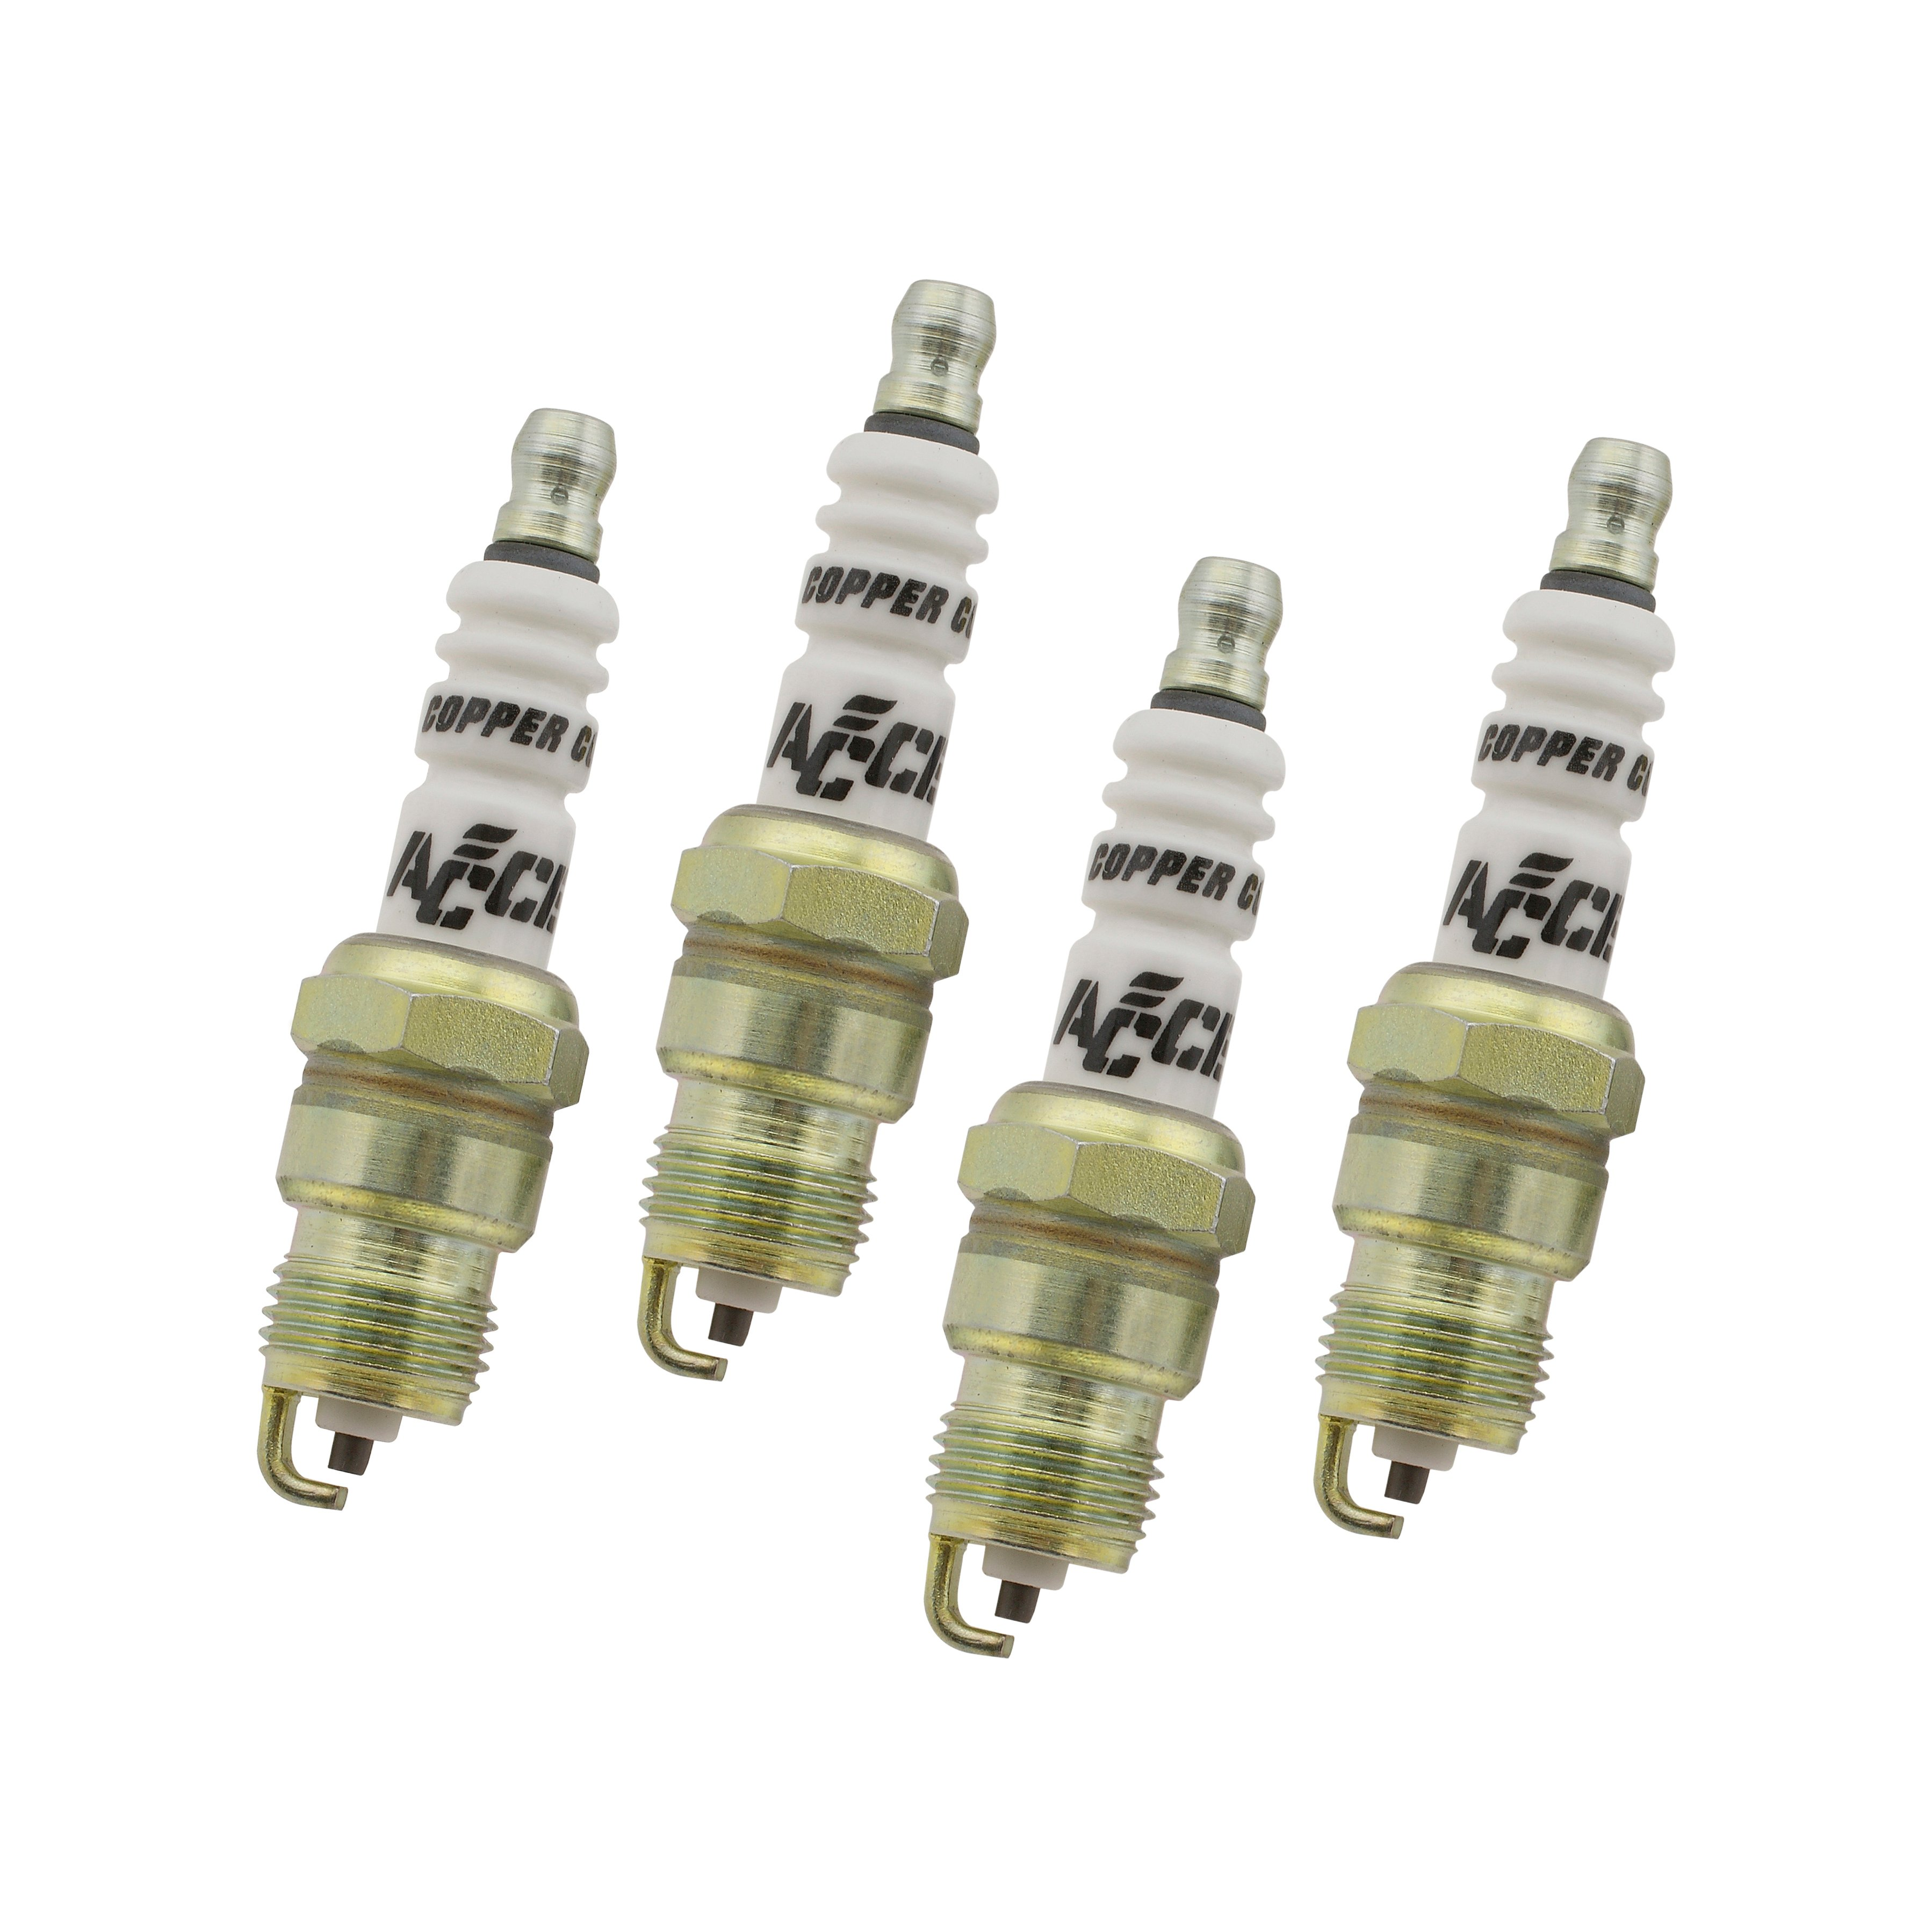 HP Copper Spark Plug - Shorty